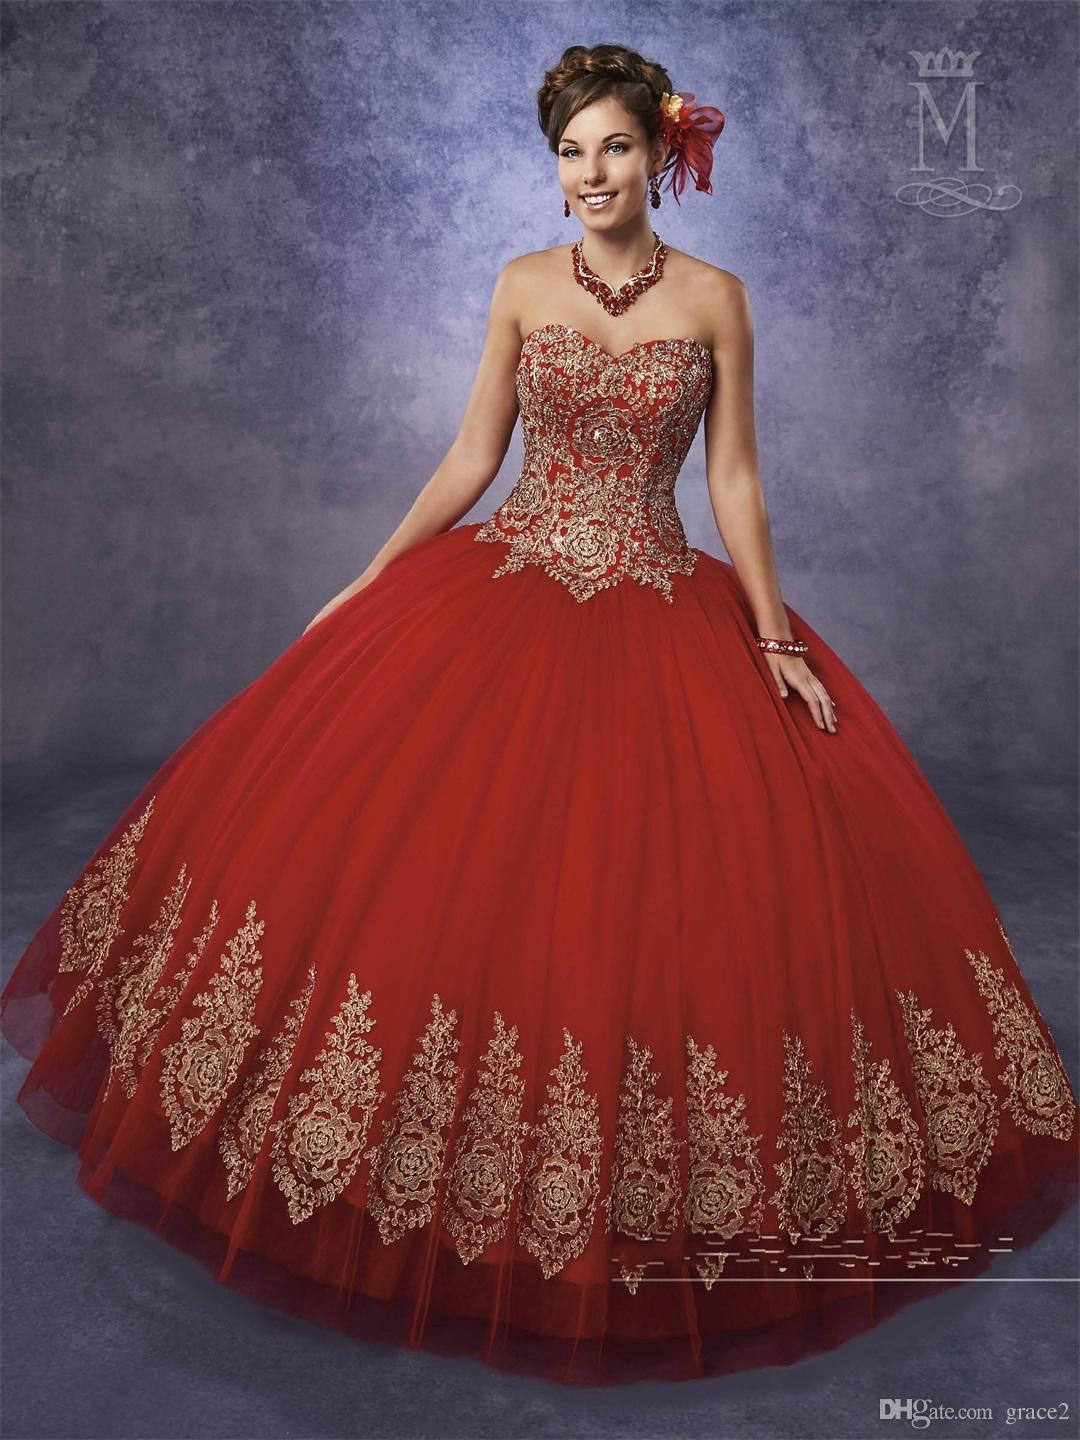 651ee610f5c Strapless Bright Red Royal Blue Ball Gown Quinceanera Dresses With Gold  Appliques Sleeveless Floor Length Puffy Sweet 15 16 Birthday Dresses Blue  ...